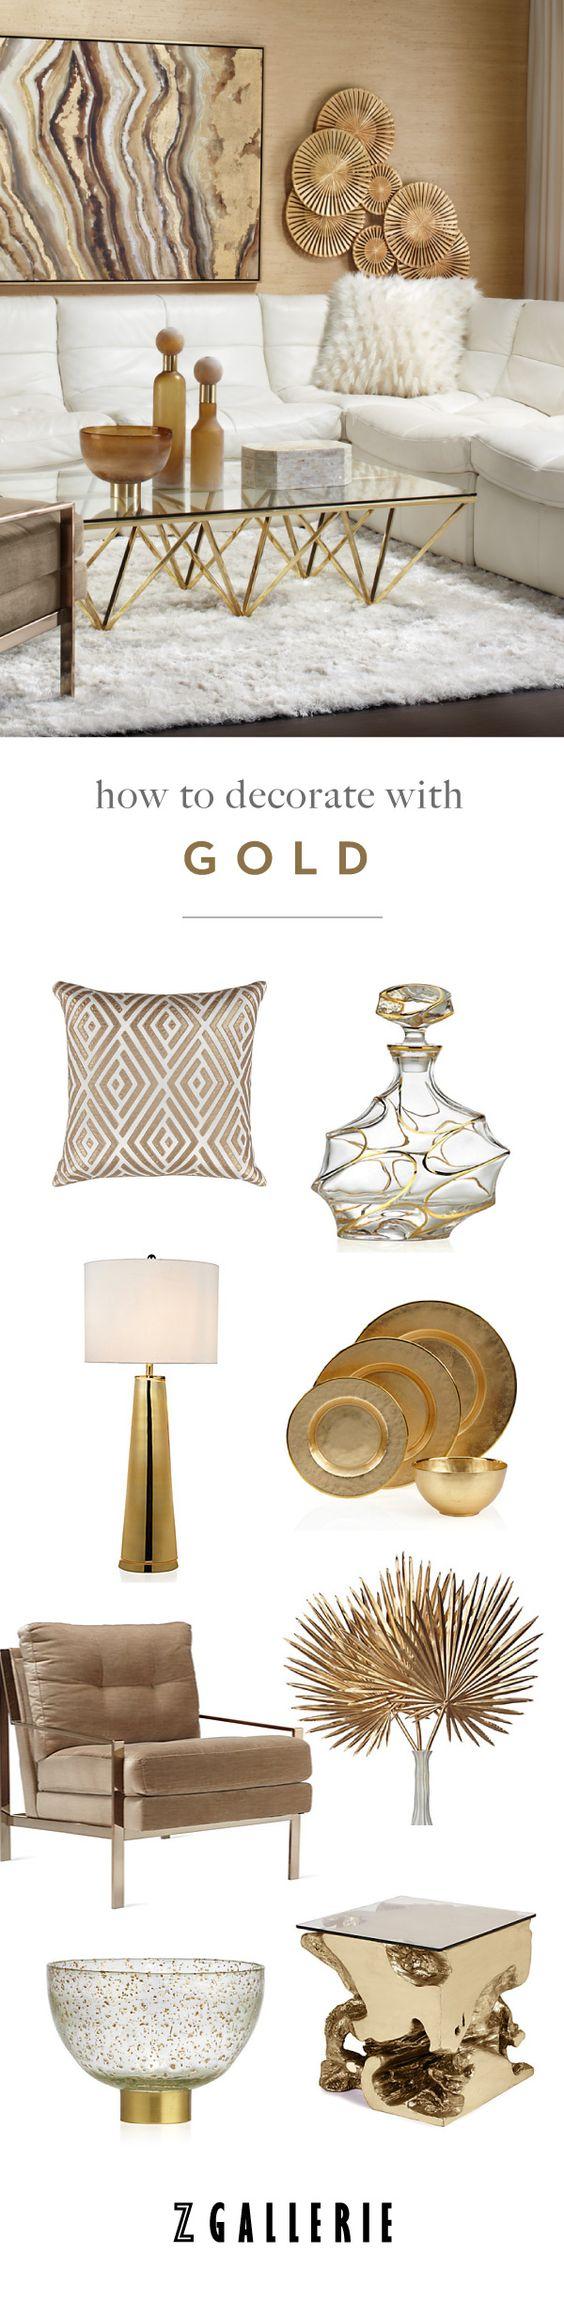 Get easy ideas for infusing gold in your space this summer. Explore our Fashionista's Guide to Home Color on zgallerie.com!: